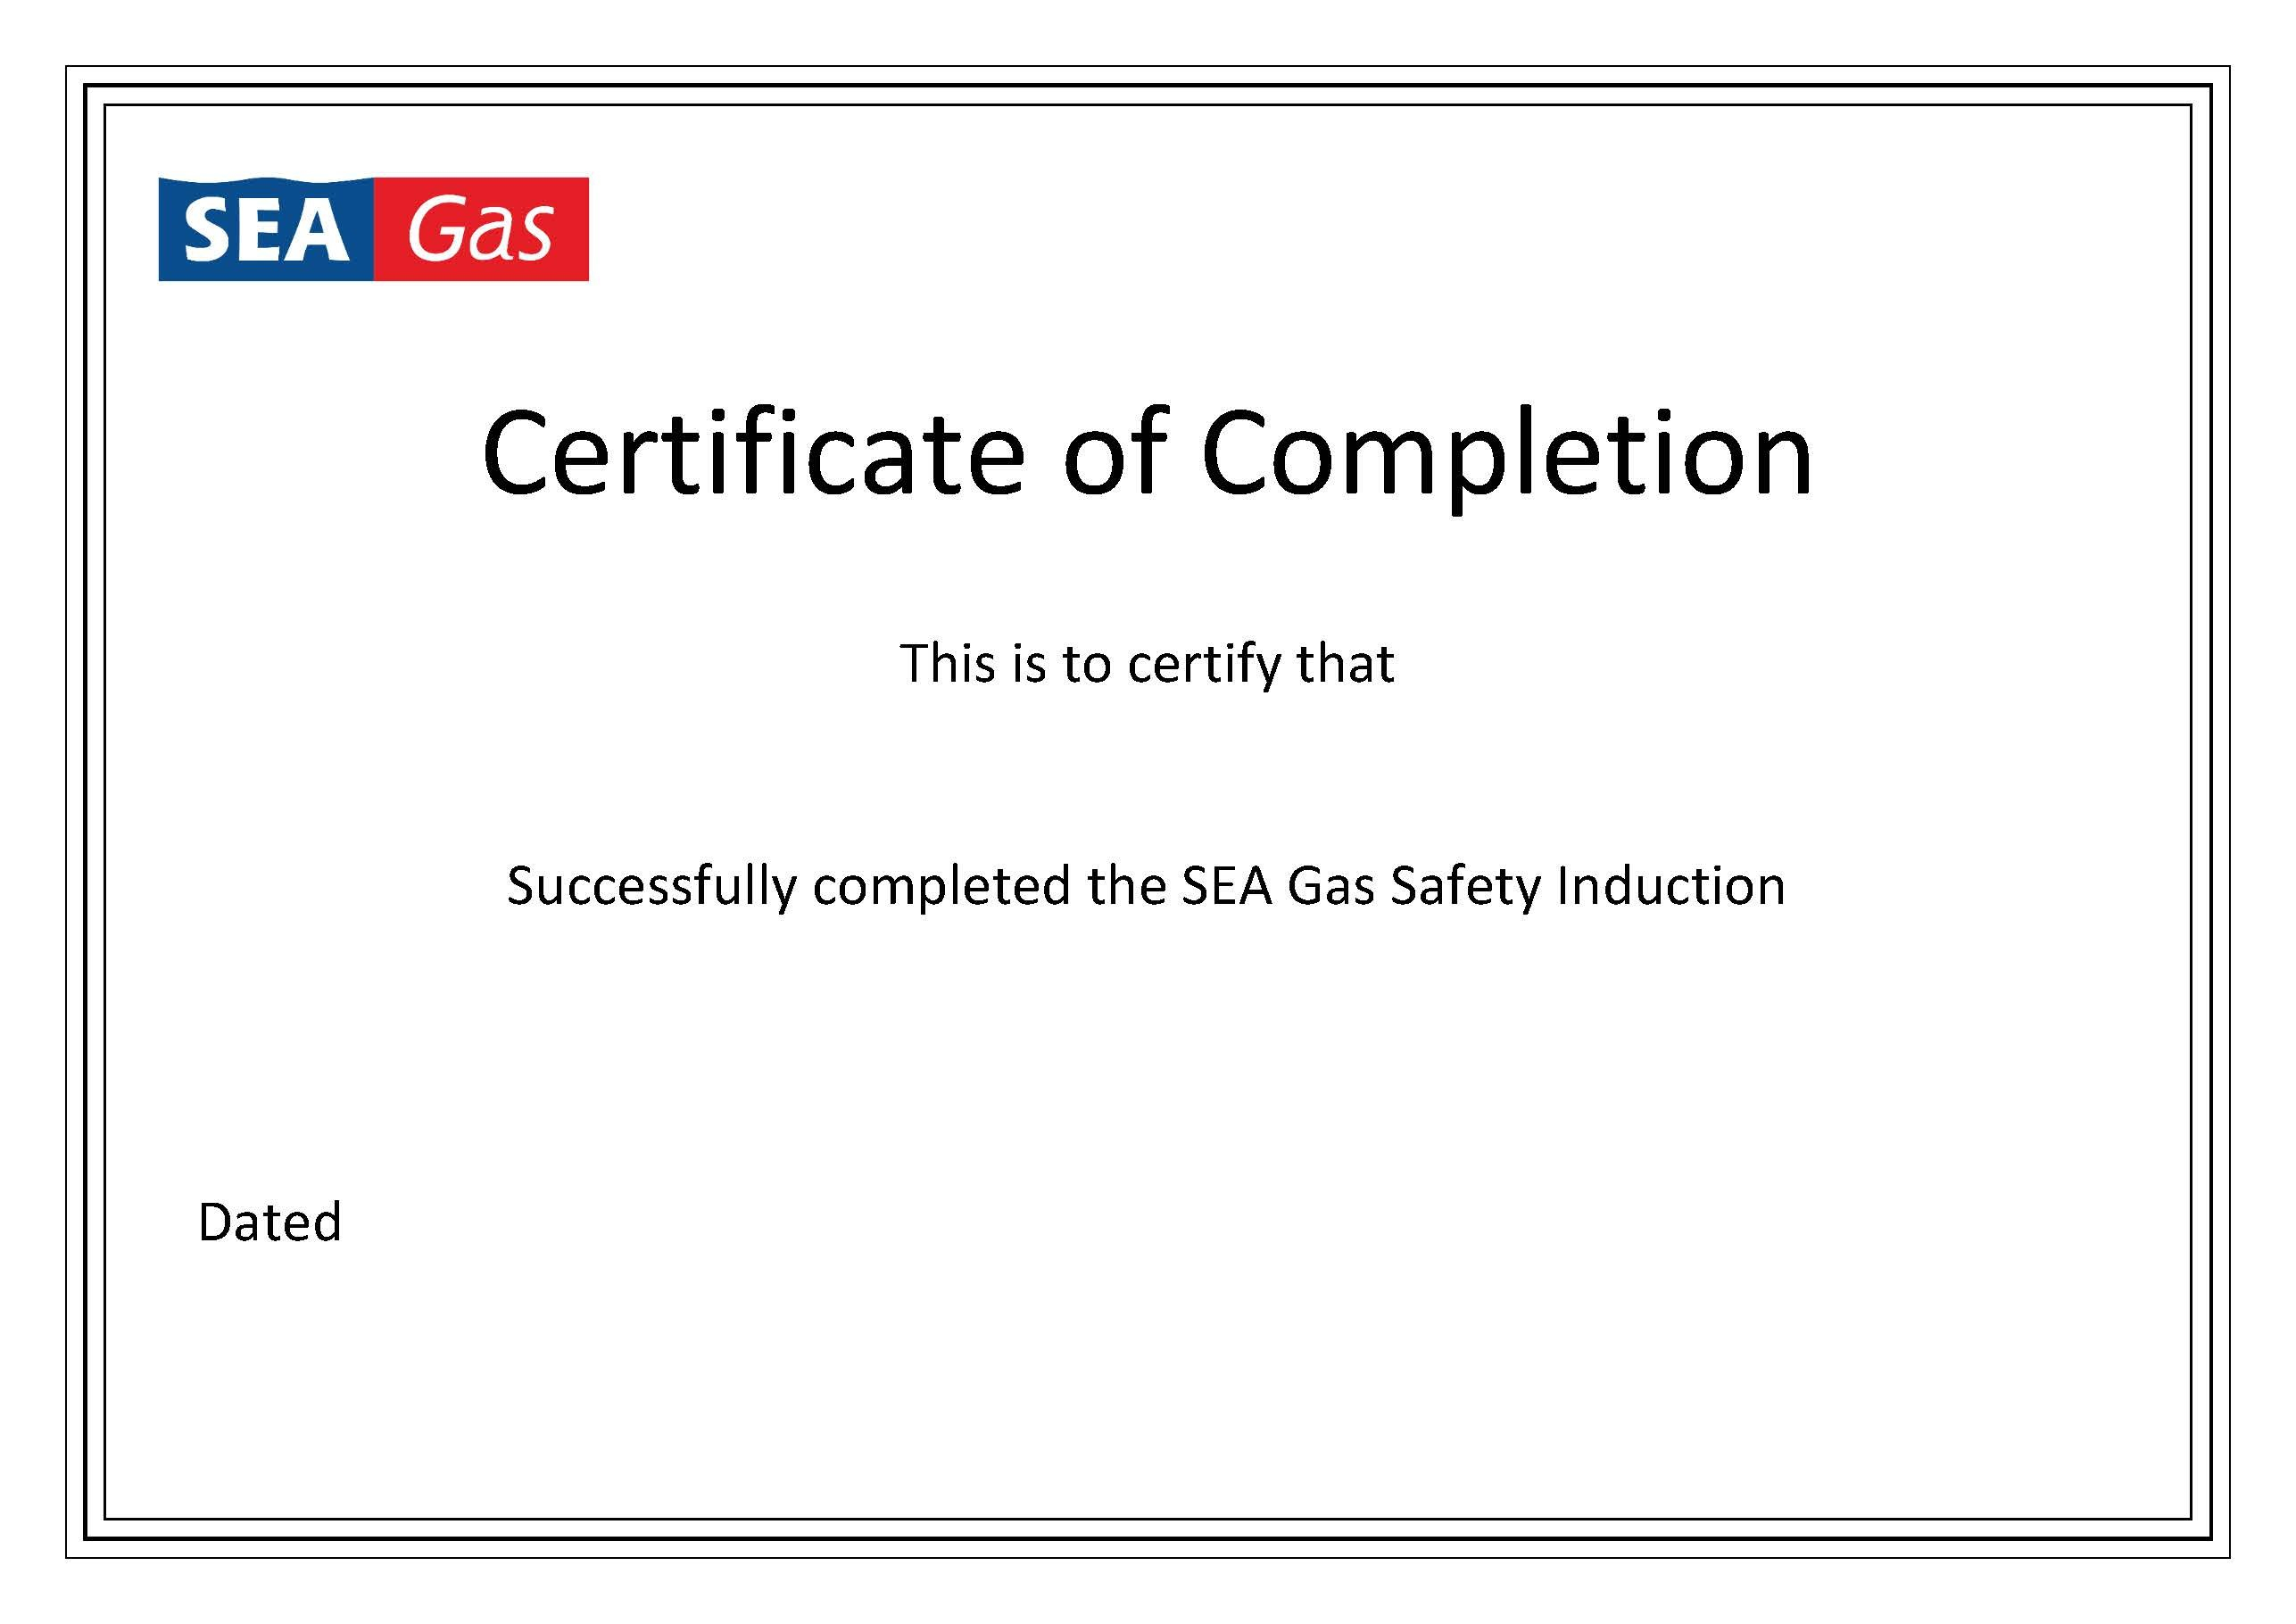 Certificate Of Completion Template  Sea Gas Pertaining To Certification Of Completion Template